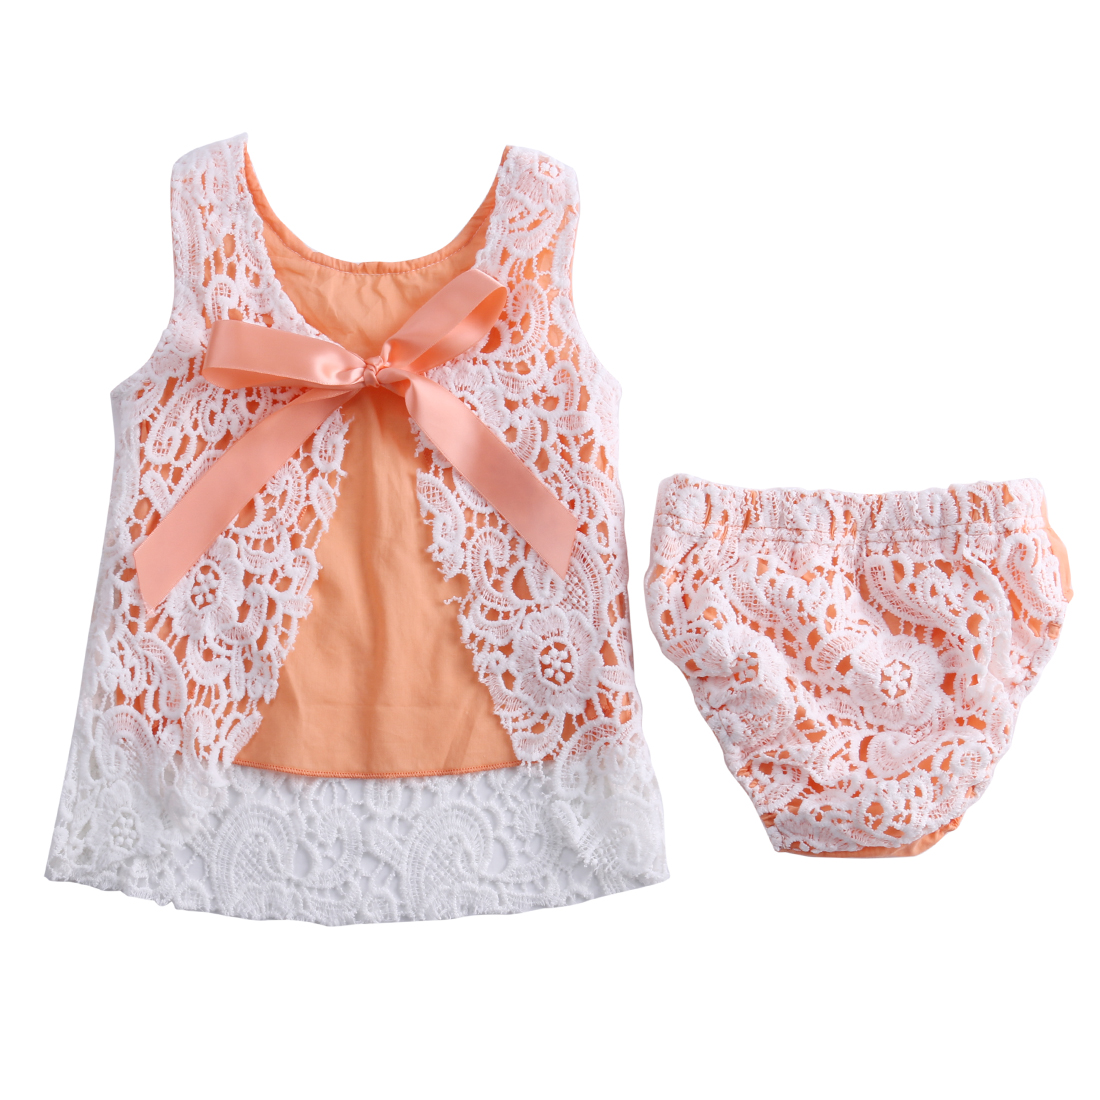 Newborn Baby Girls Clothes Bowknot Lace Swing Tops+Briefs 2Pcs sets Kids Girls Cute summer suits Outfit girls tops cute pants outfit clothes newborn kids baby girl clothing sets summer off shoulder striped short sleeve 1 6t